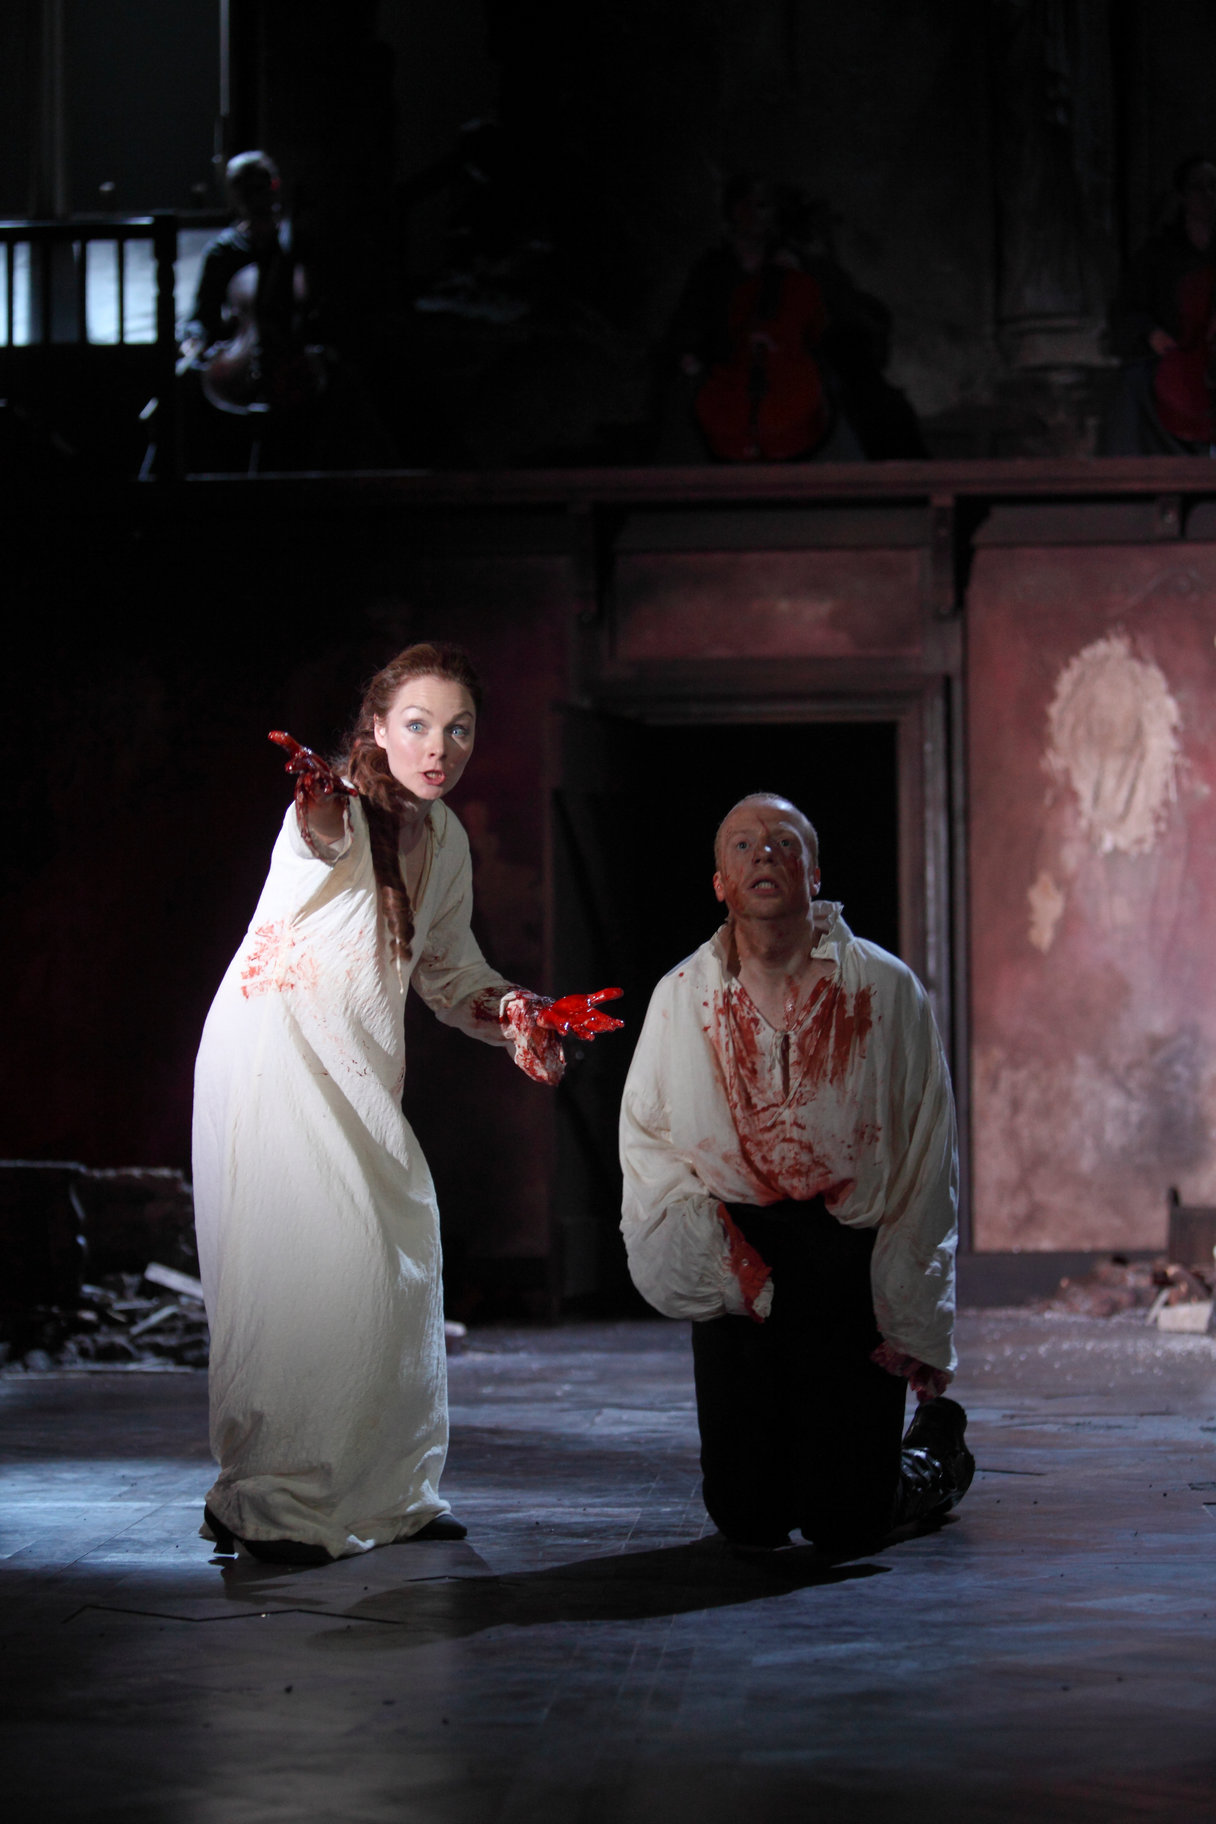 Lady Macbeth and her husband covered in blood from Duncan's murder.